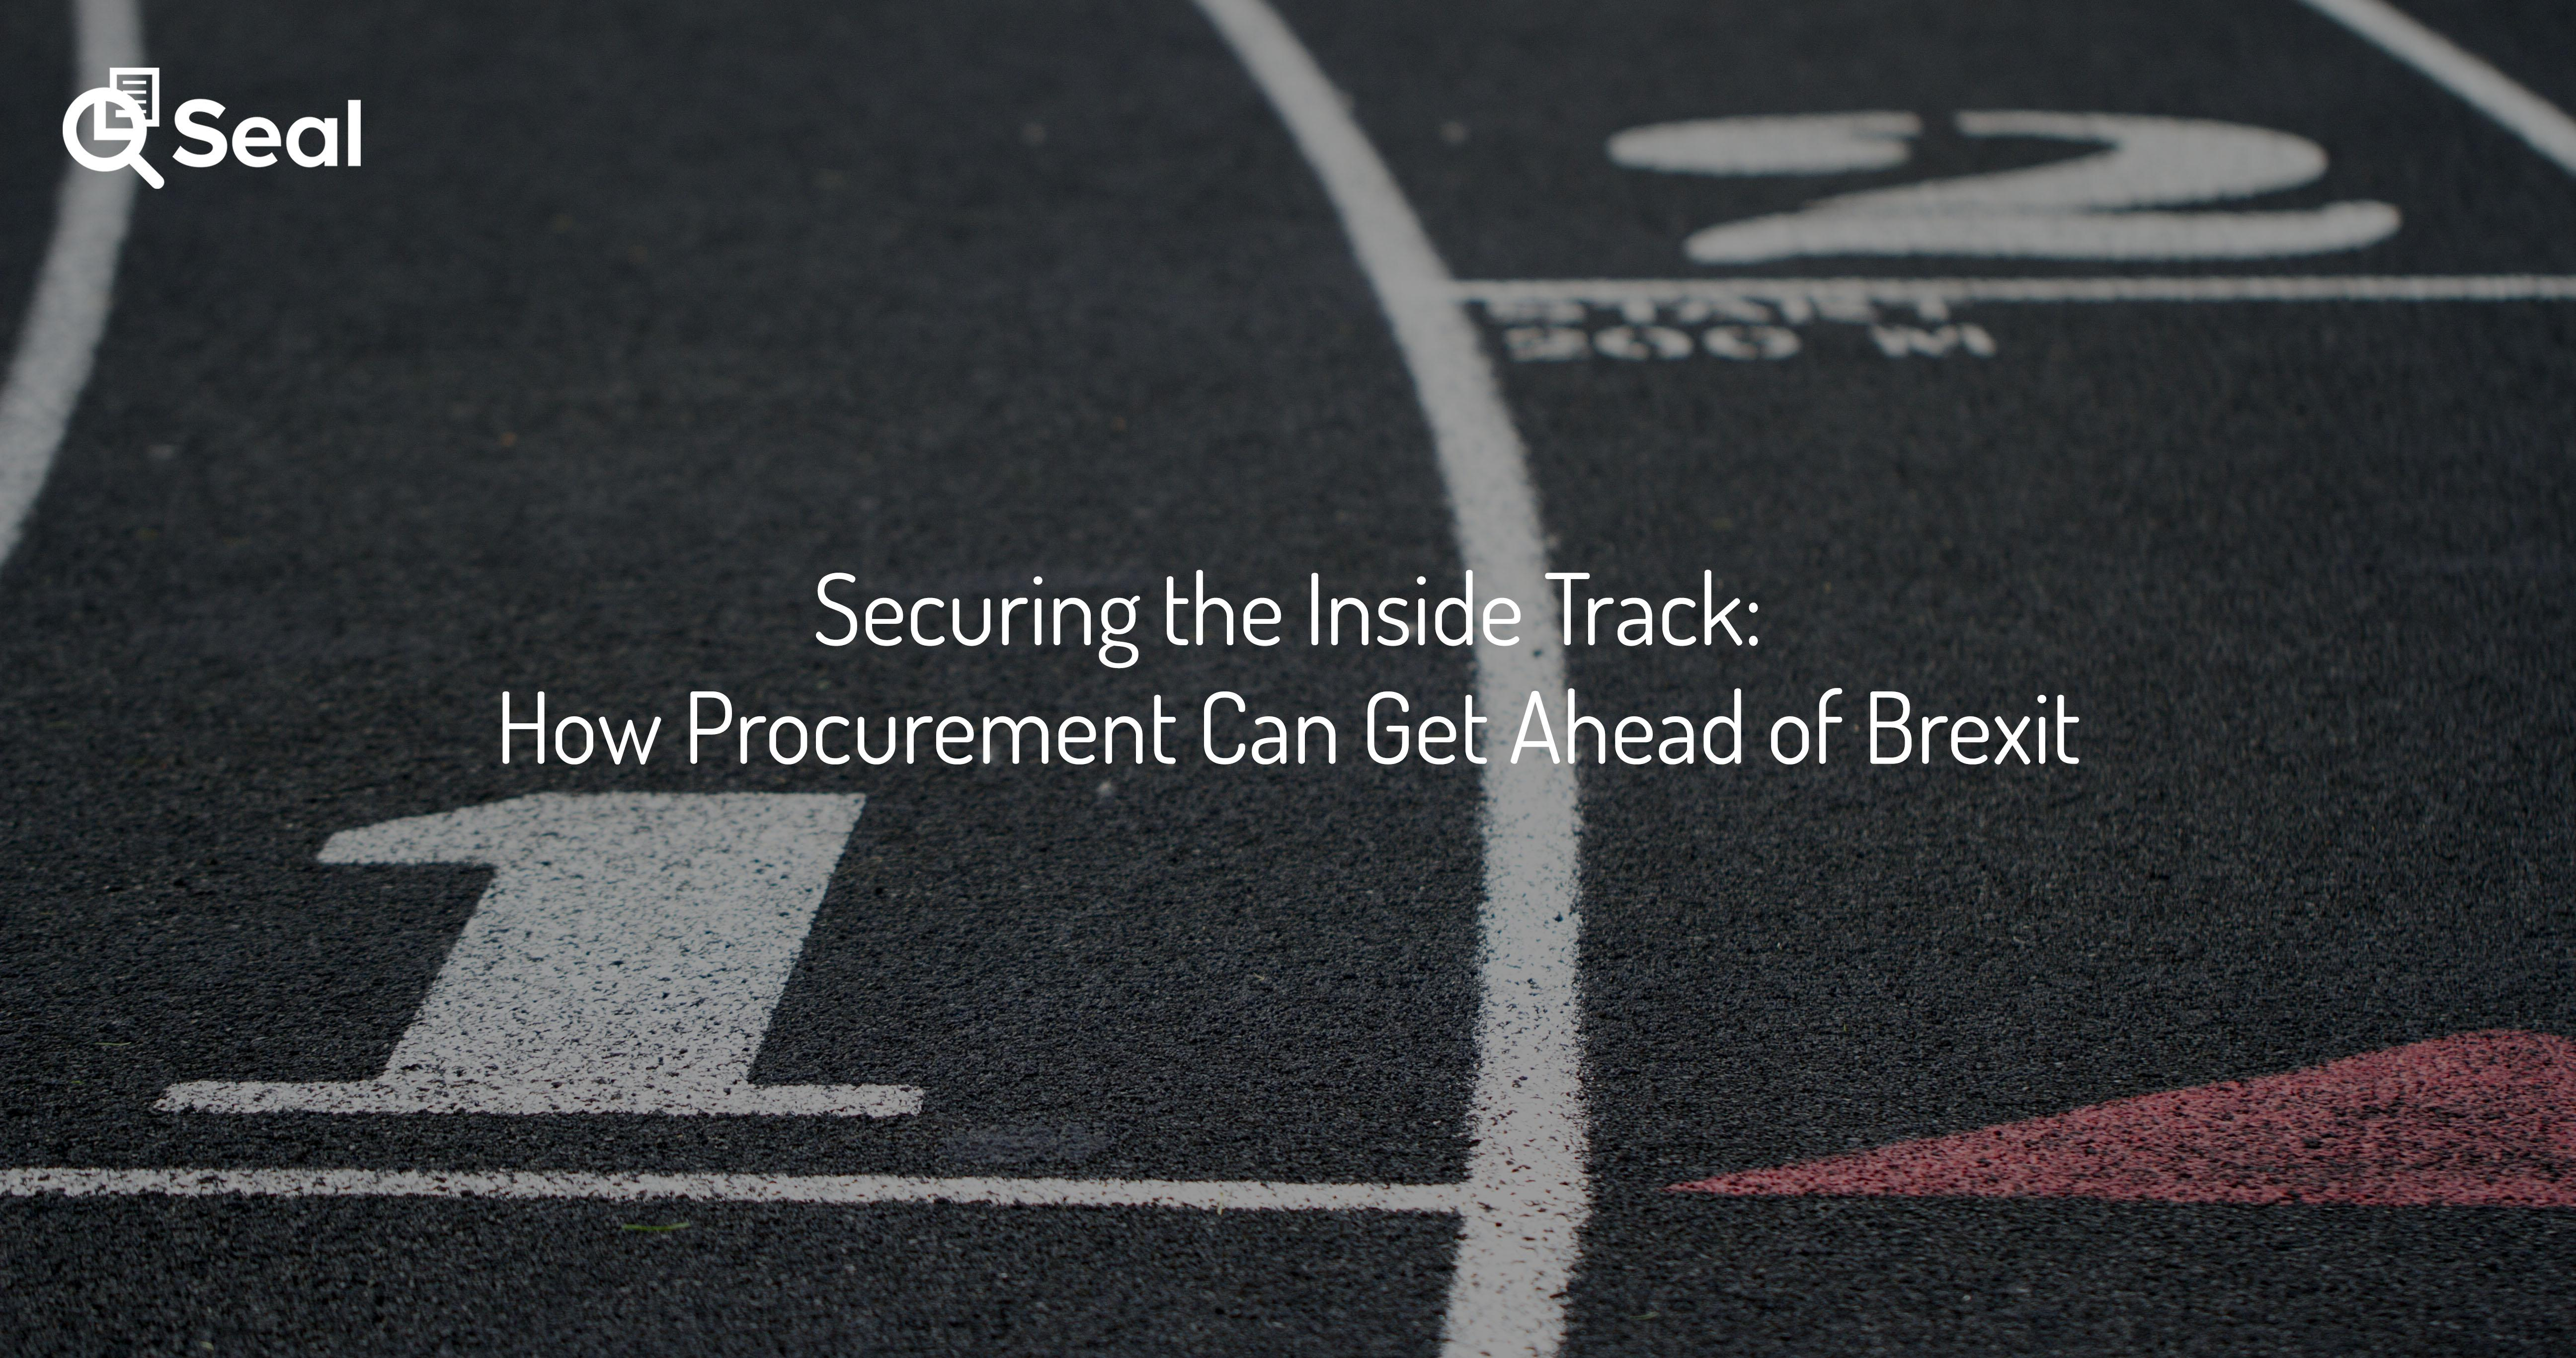 Securing the Inside Track: How Procurement Can Get Ahead of Brexit